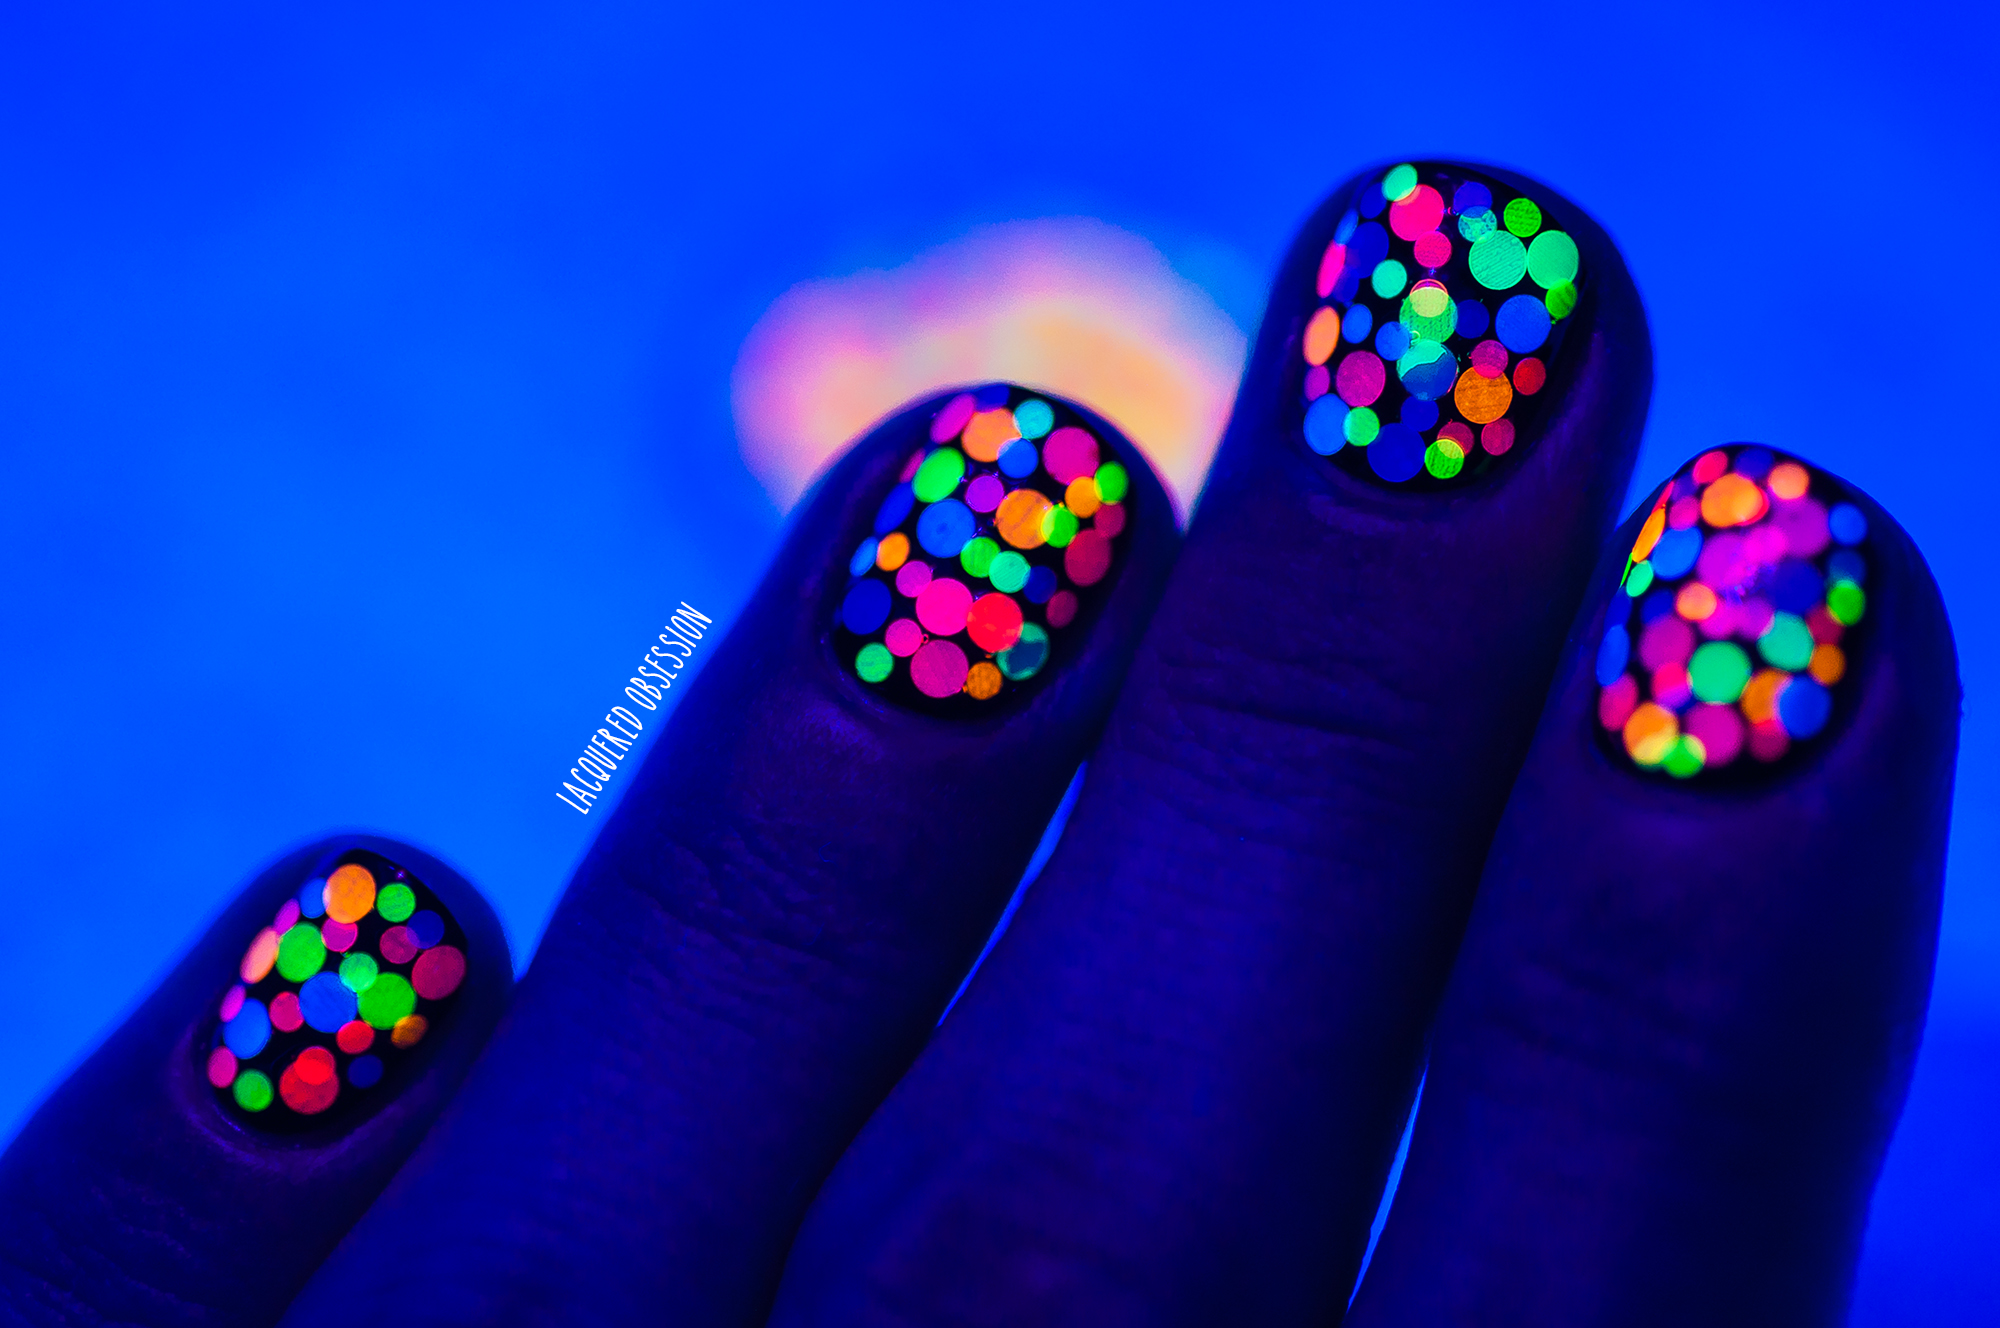 Glow-In-The-Dark Neon Glitter Nails | Glamorous Neon Nail Designs You Must Try This Season | bright colorful nail designs